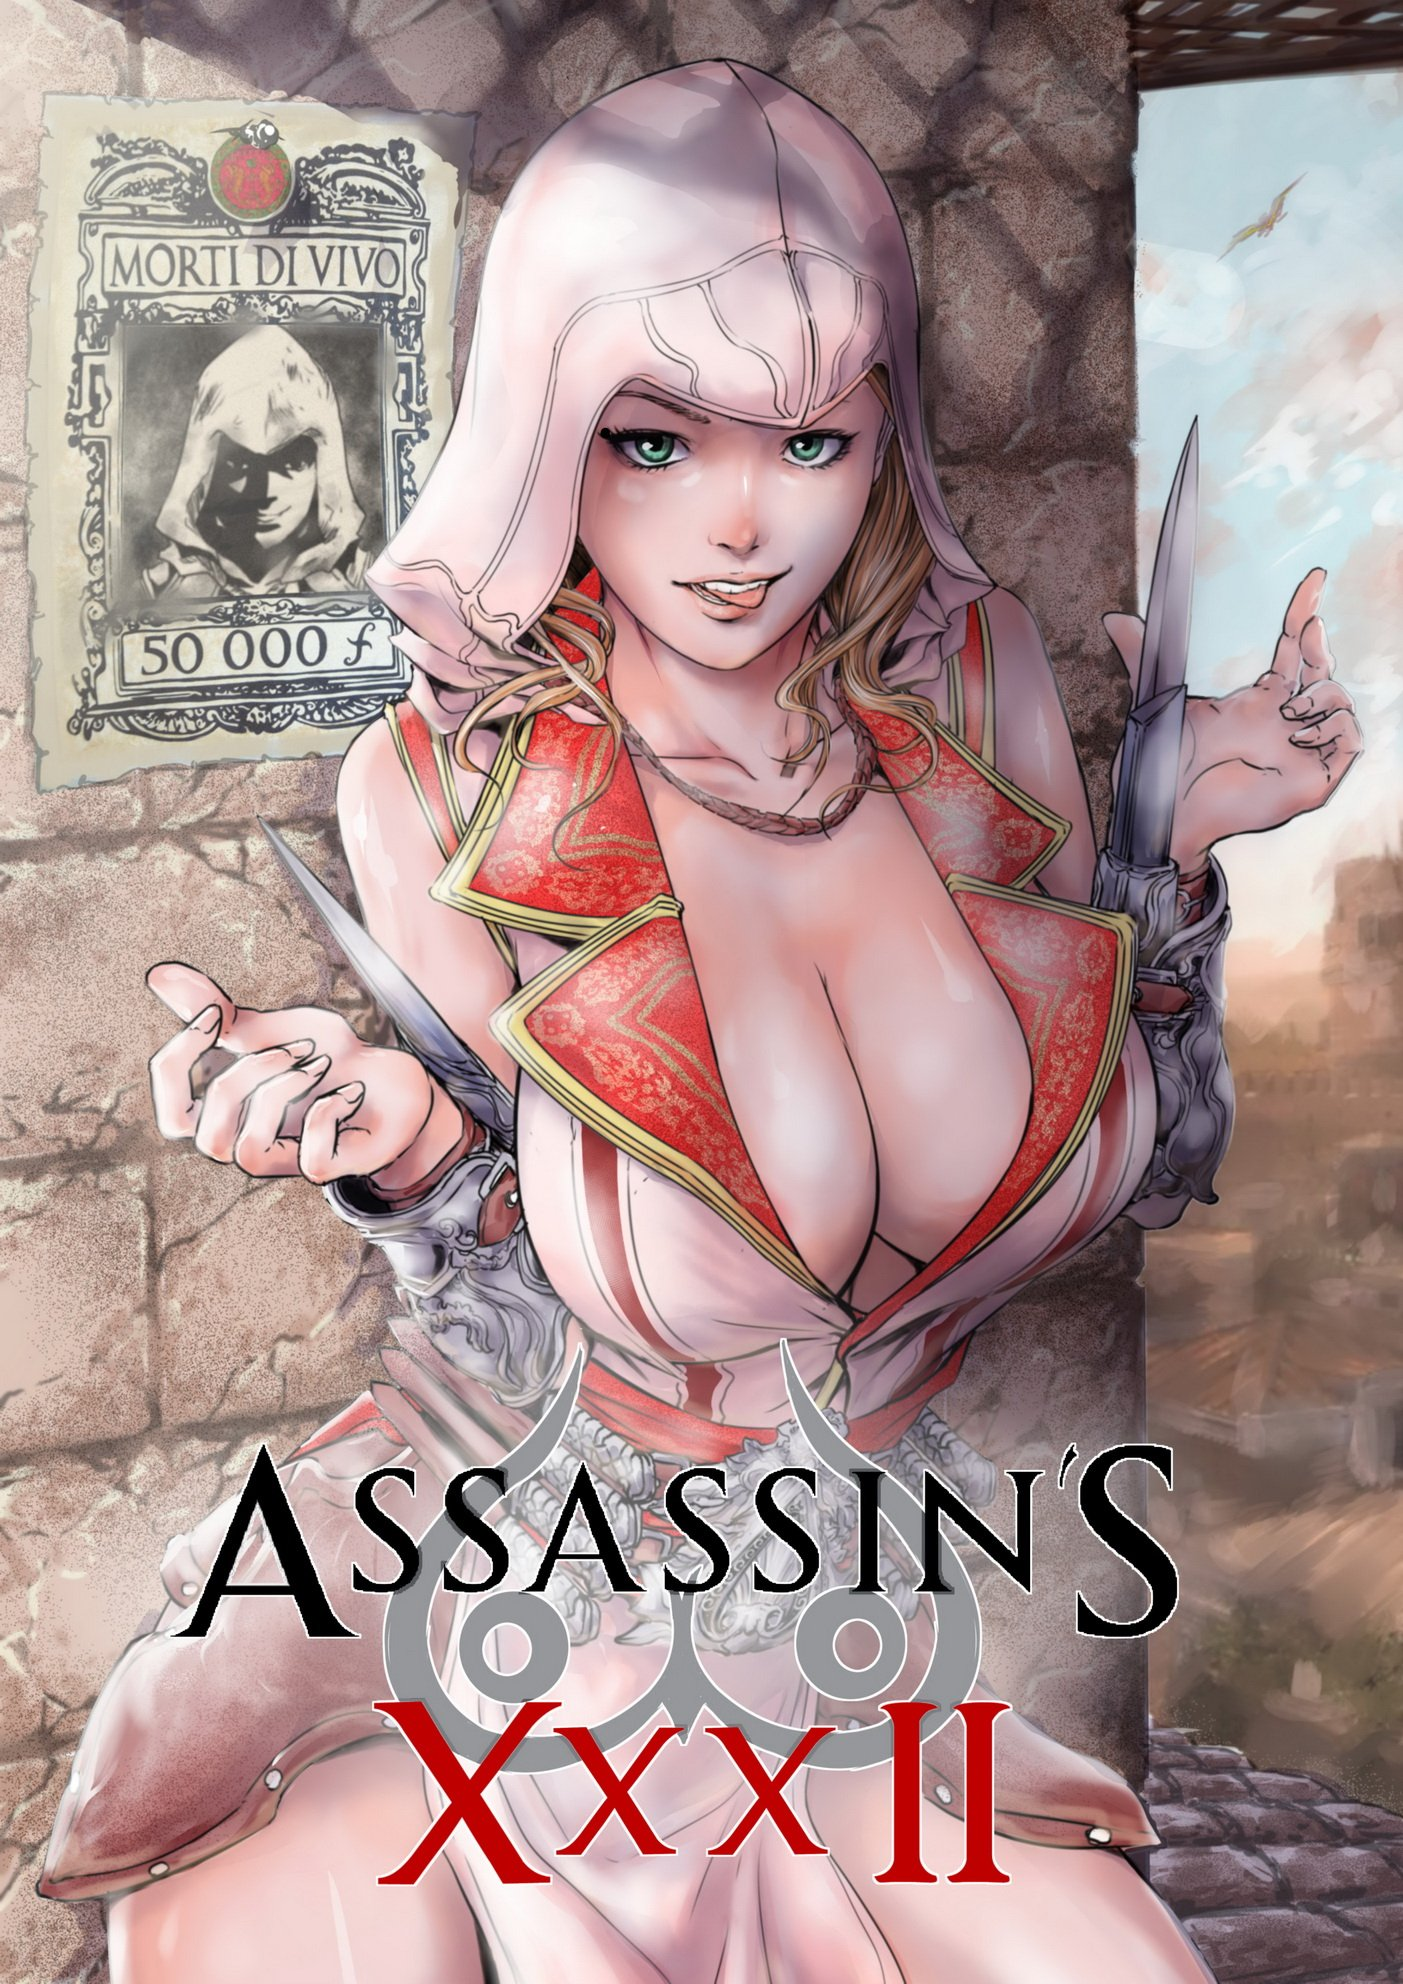 Assassin creed porn xxx nackt videos